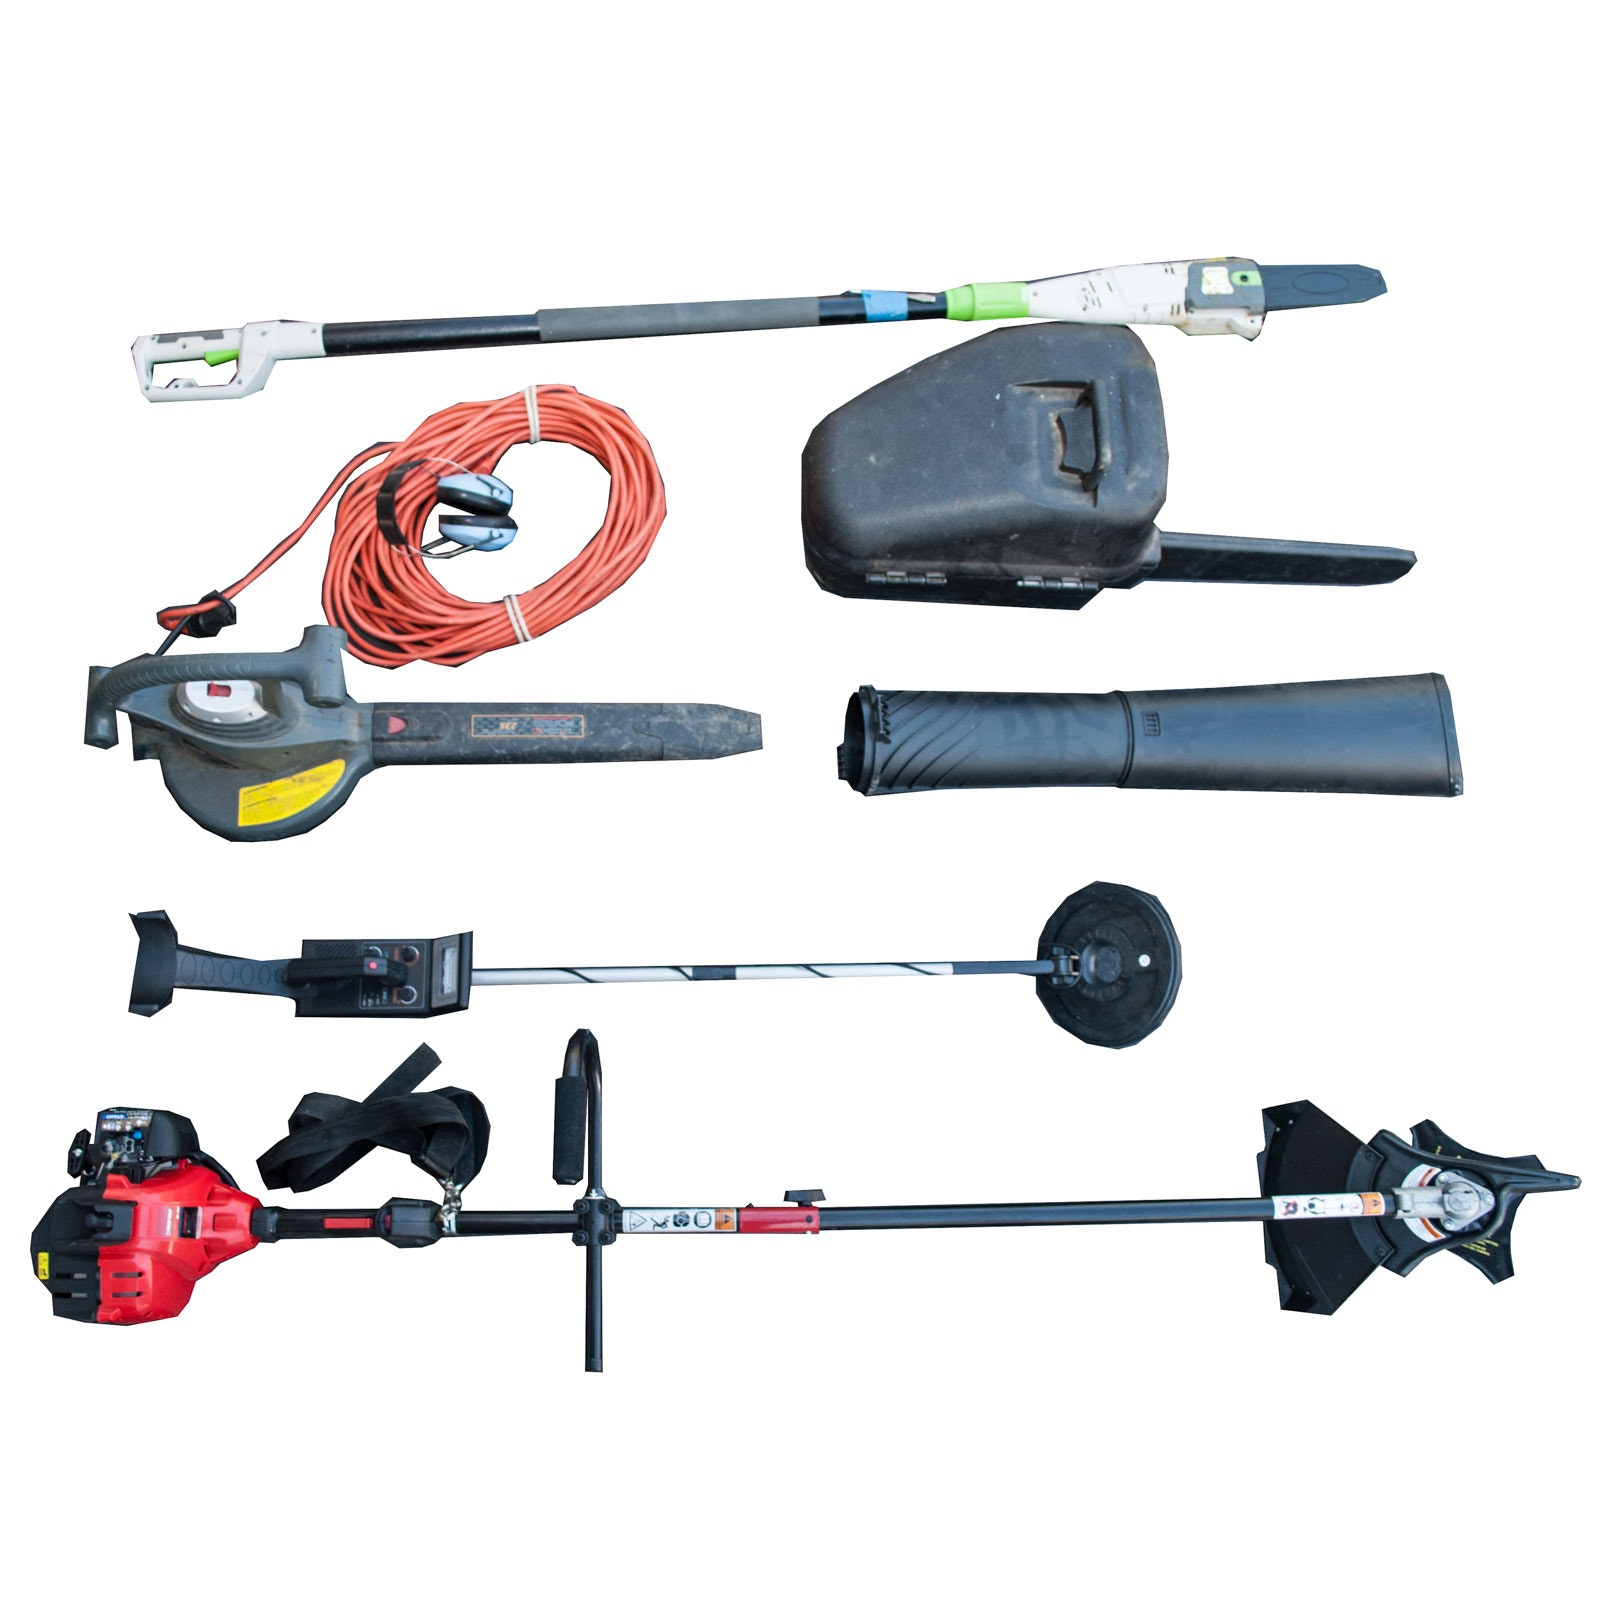 Assortment of Yard Power Tools and Metal Detector